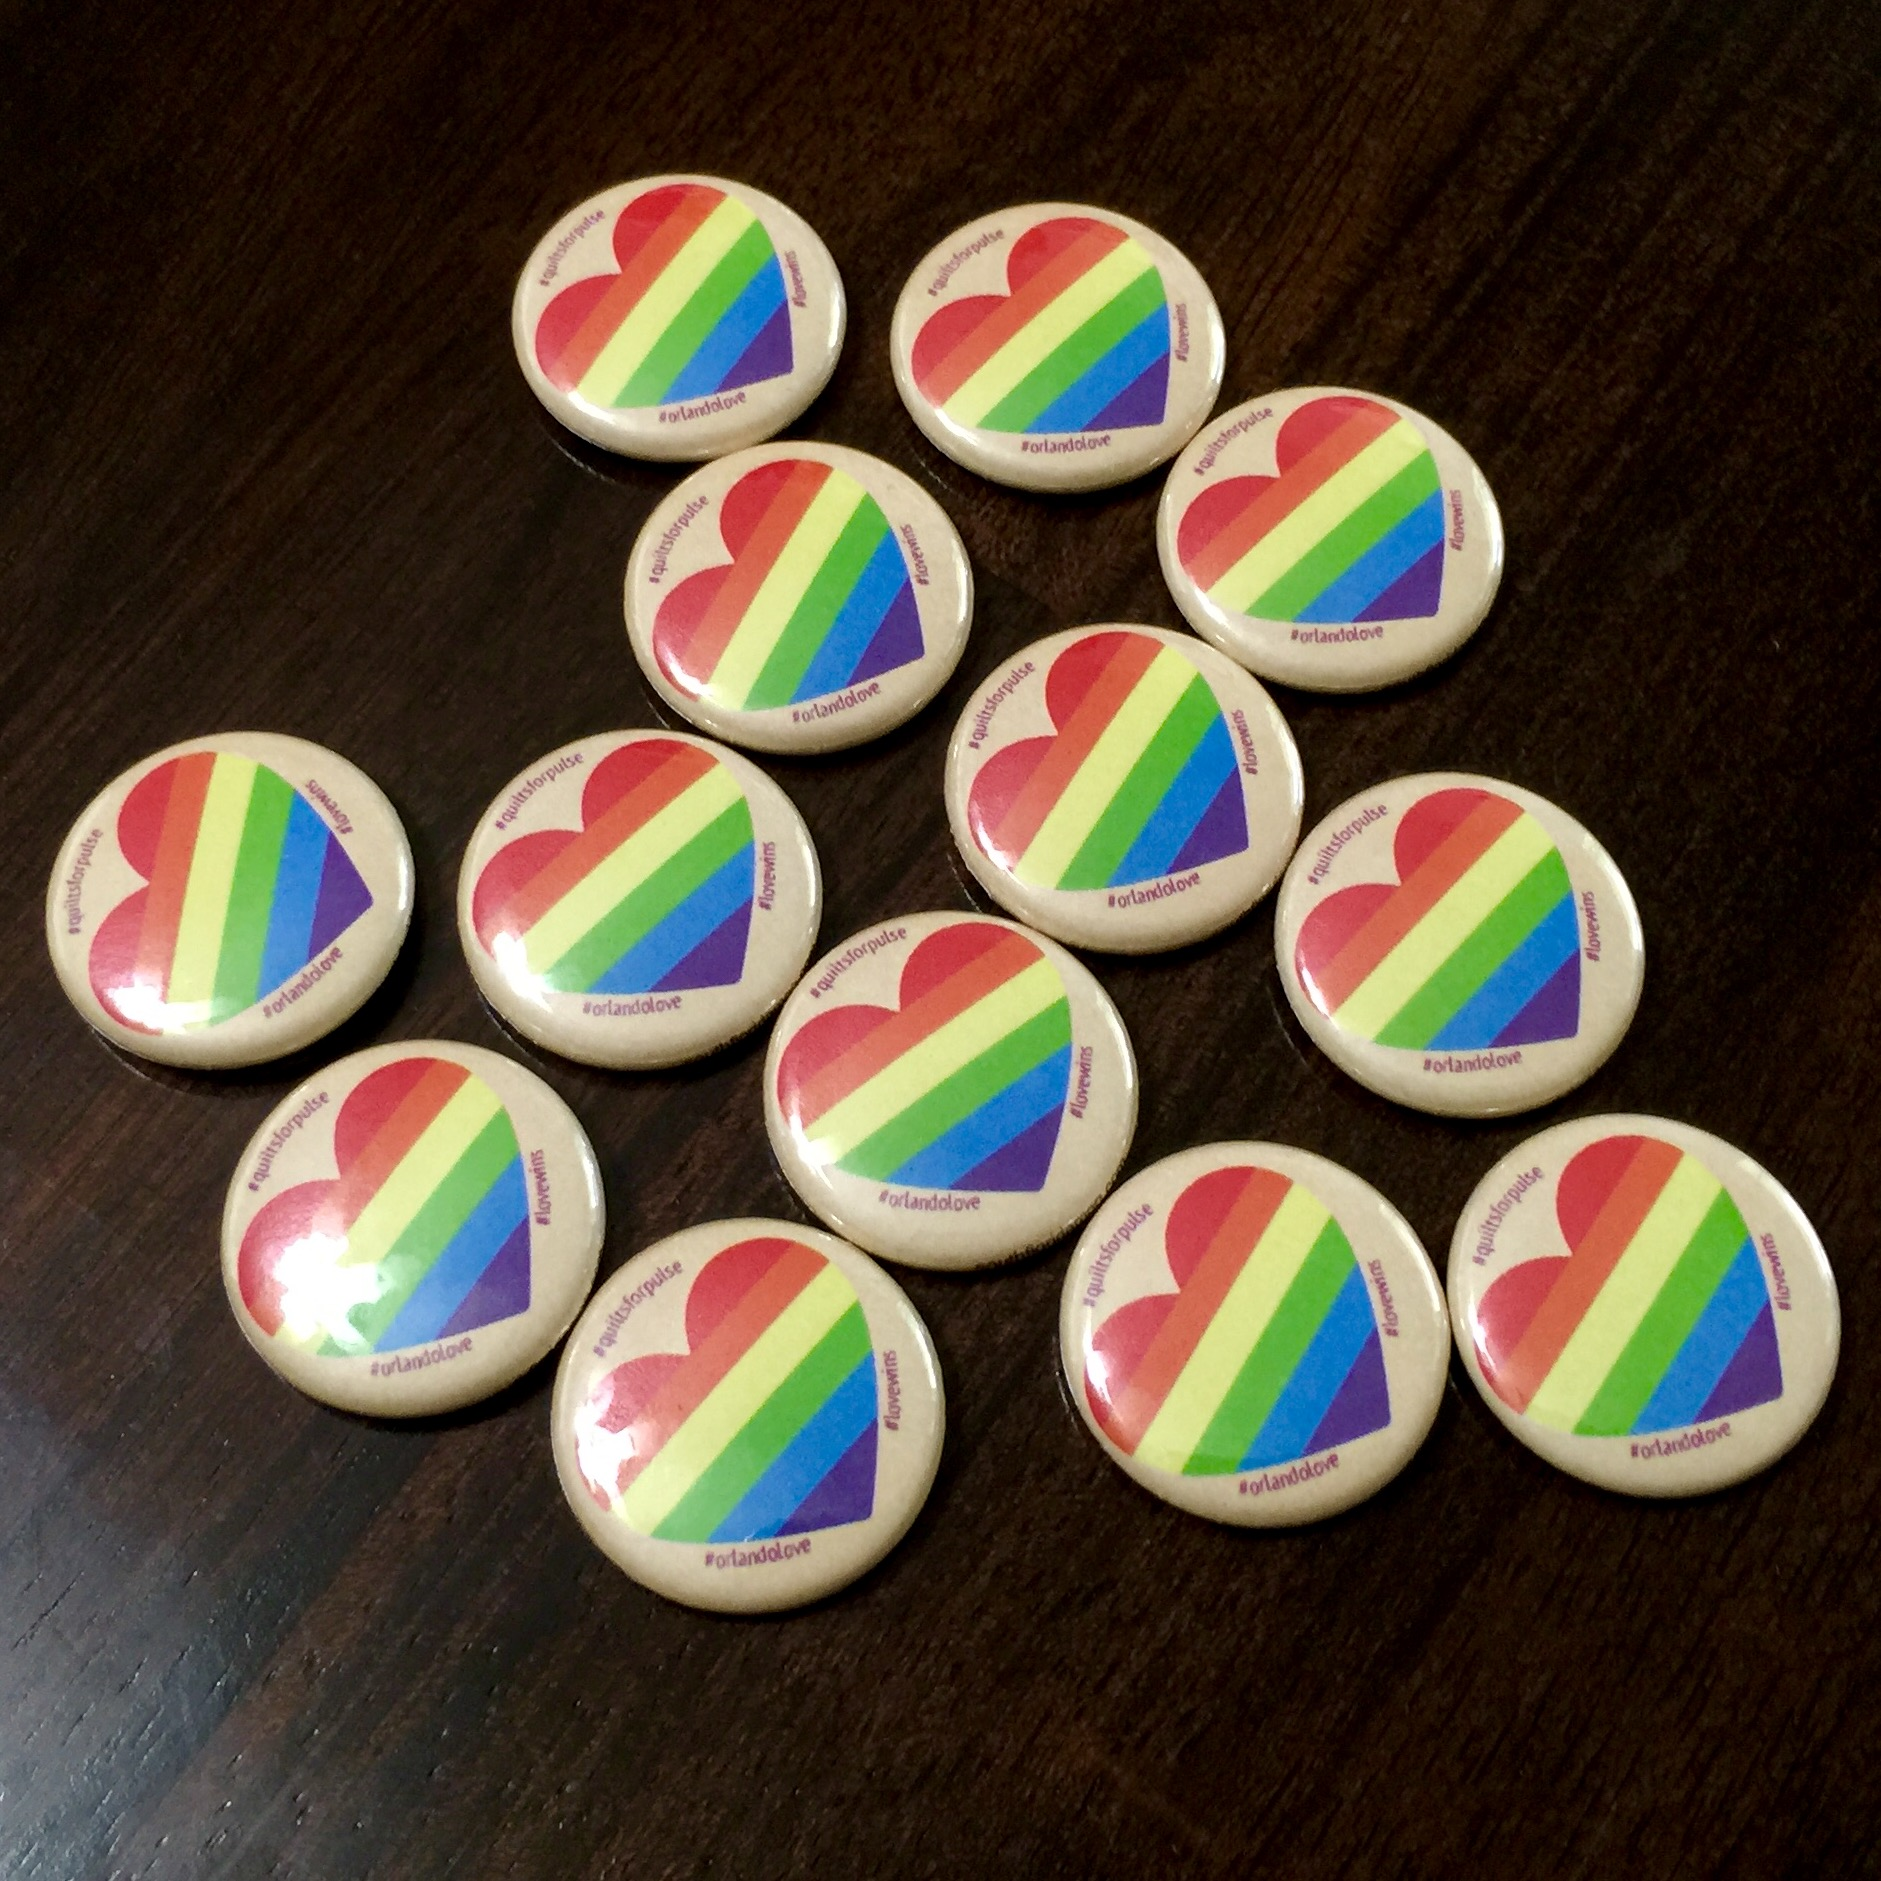 Buttons for everyone who participated